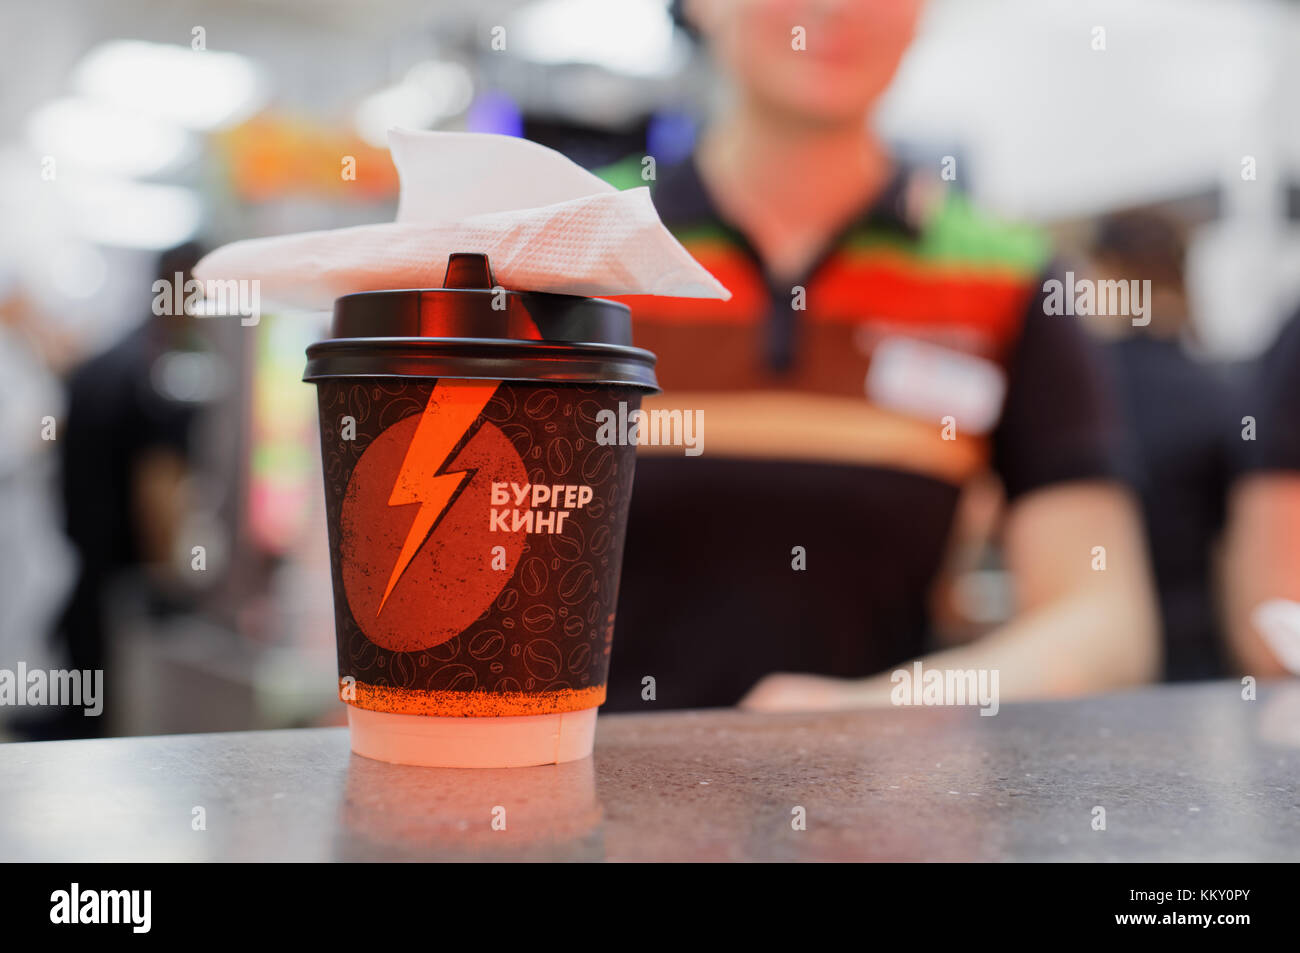 Cup of coffee on the service desk of Burger King restaurant - Stock Image